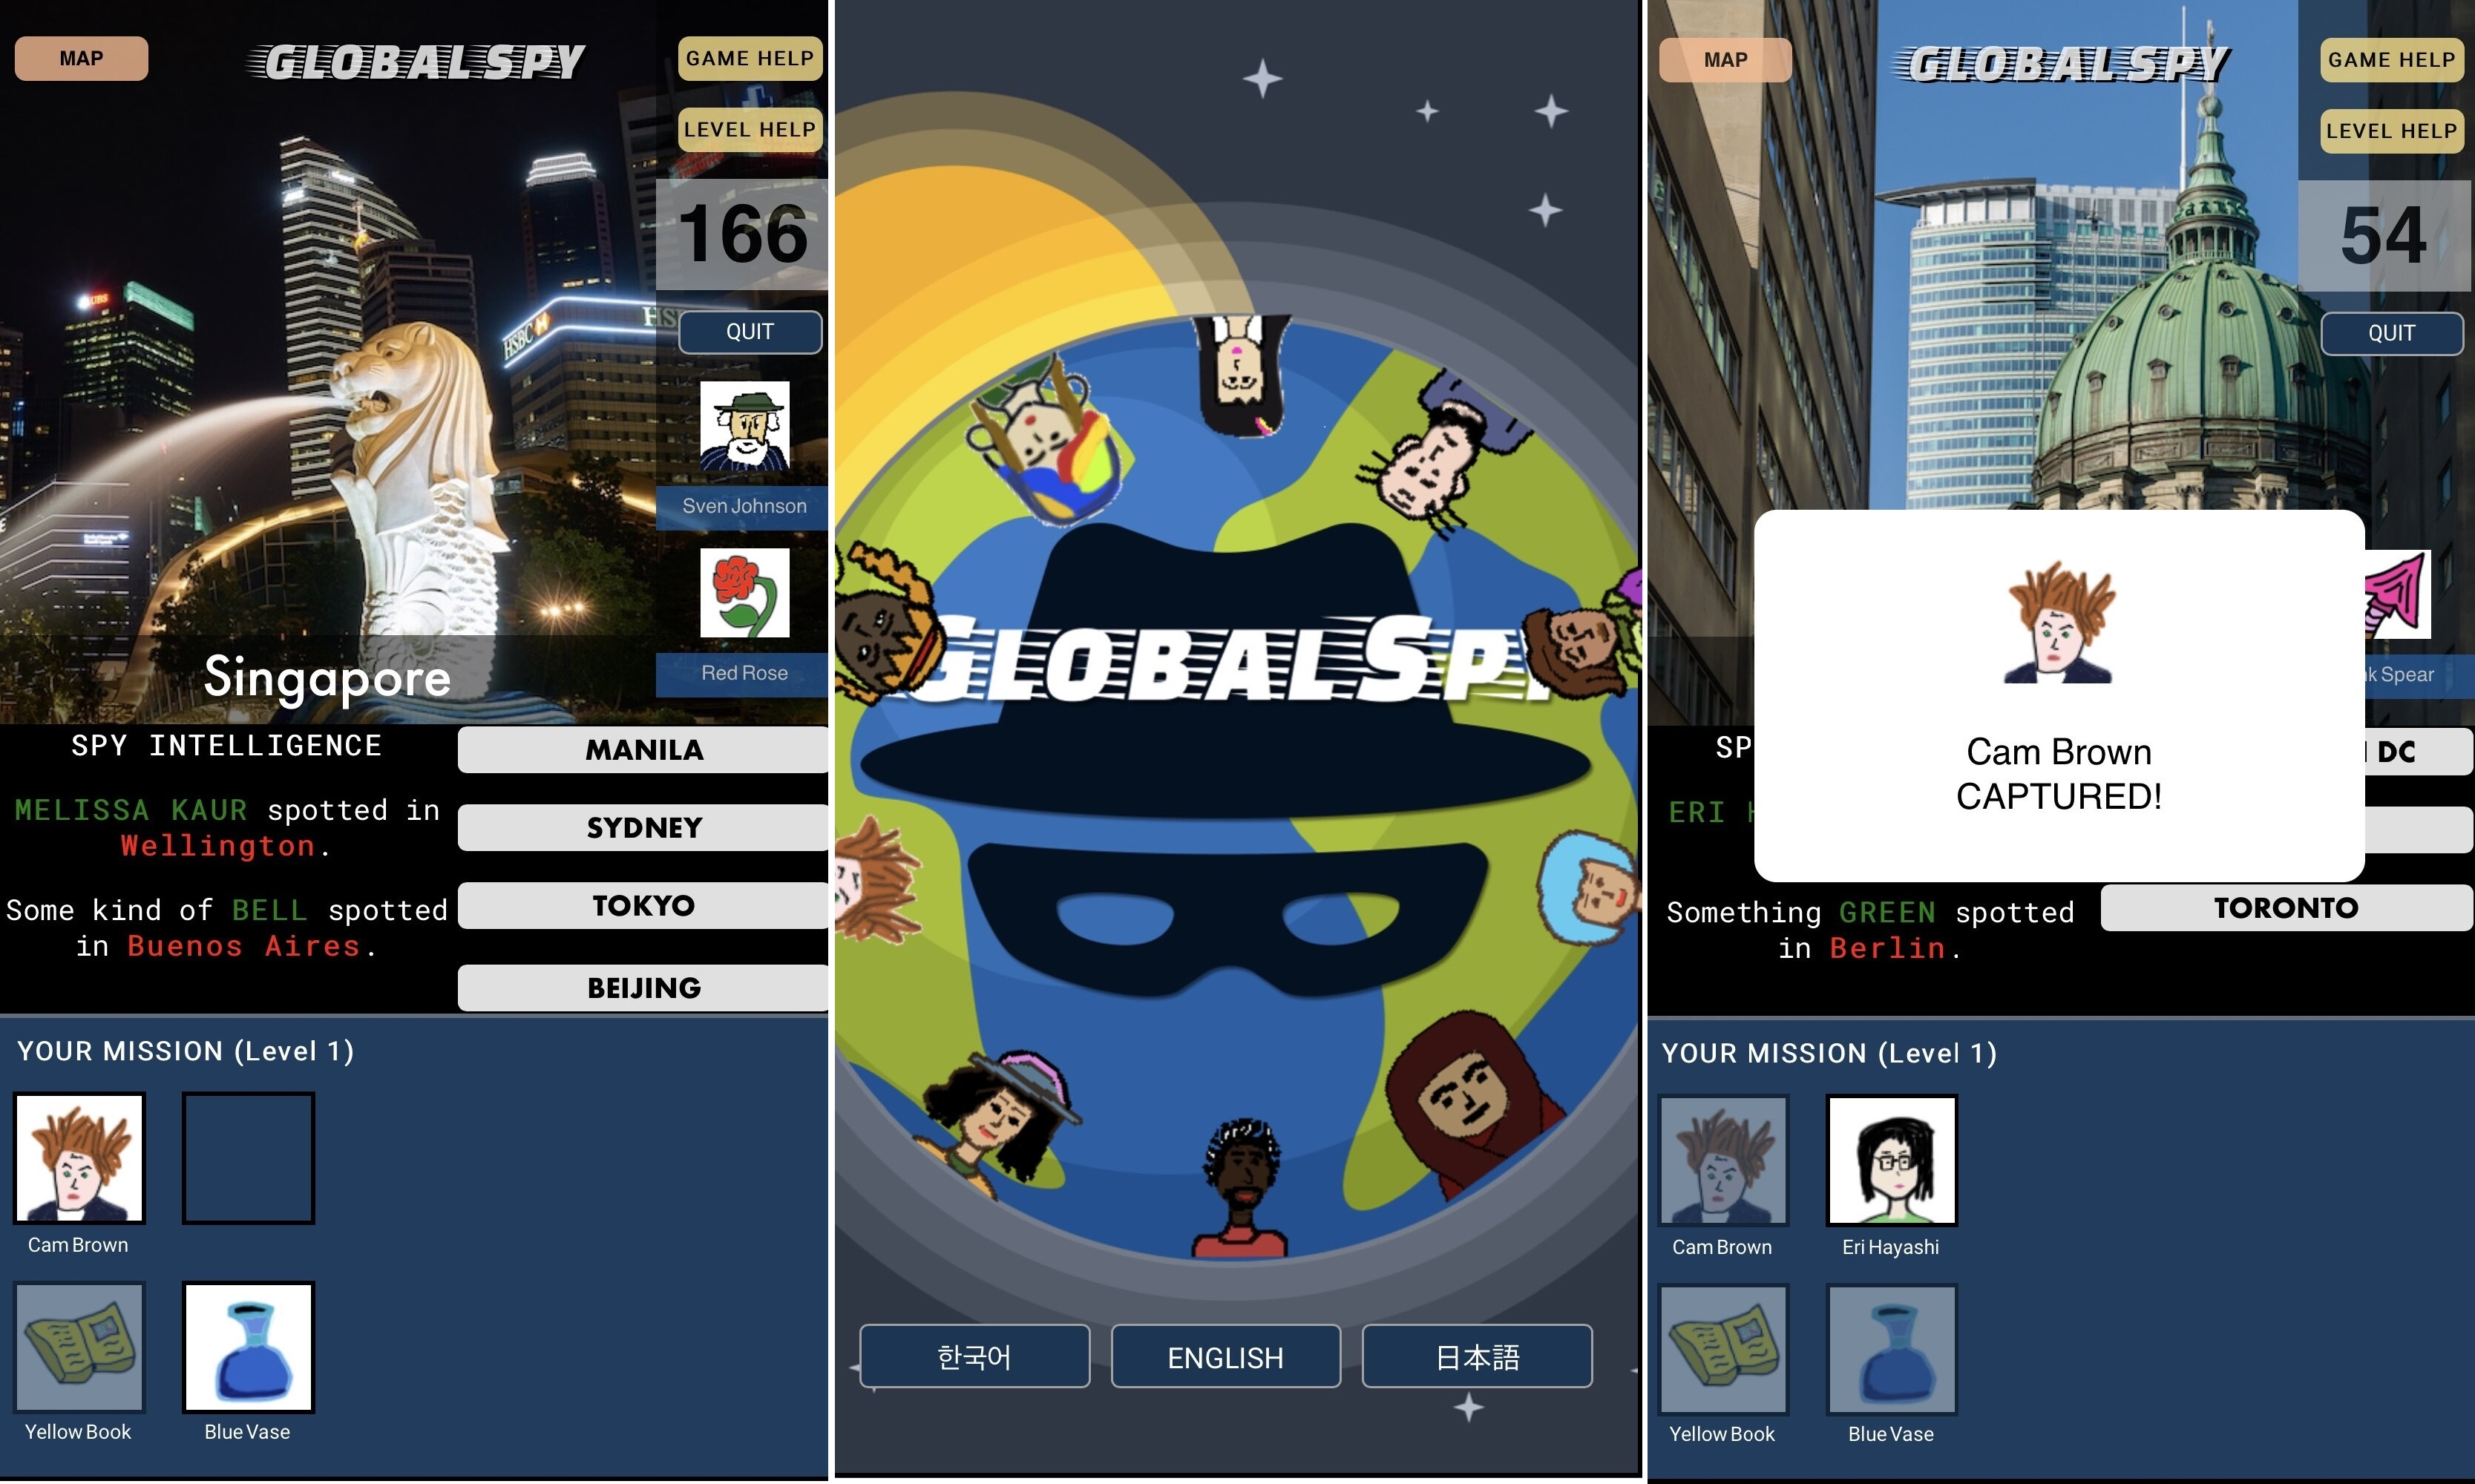 Engage in international espionage with Global Spy, available now for iOS and Android